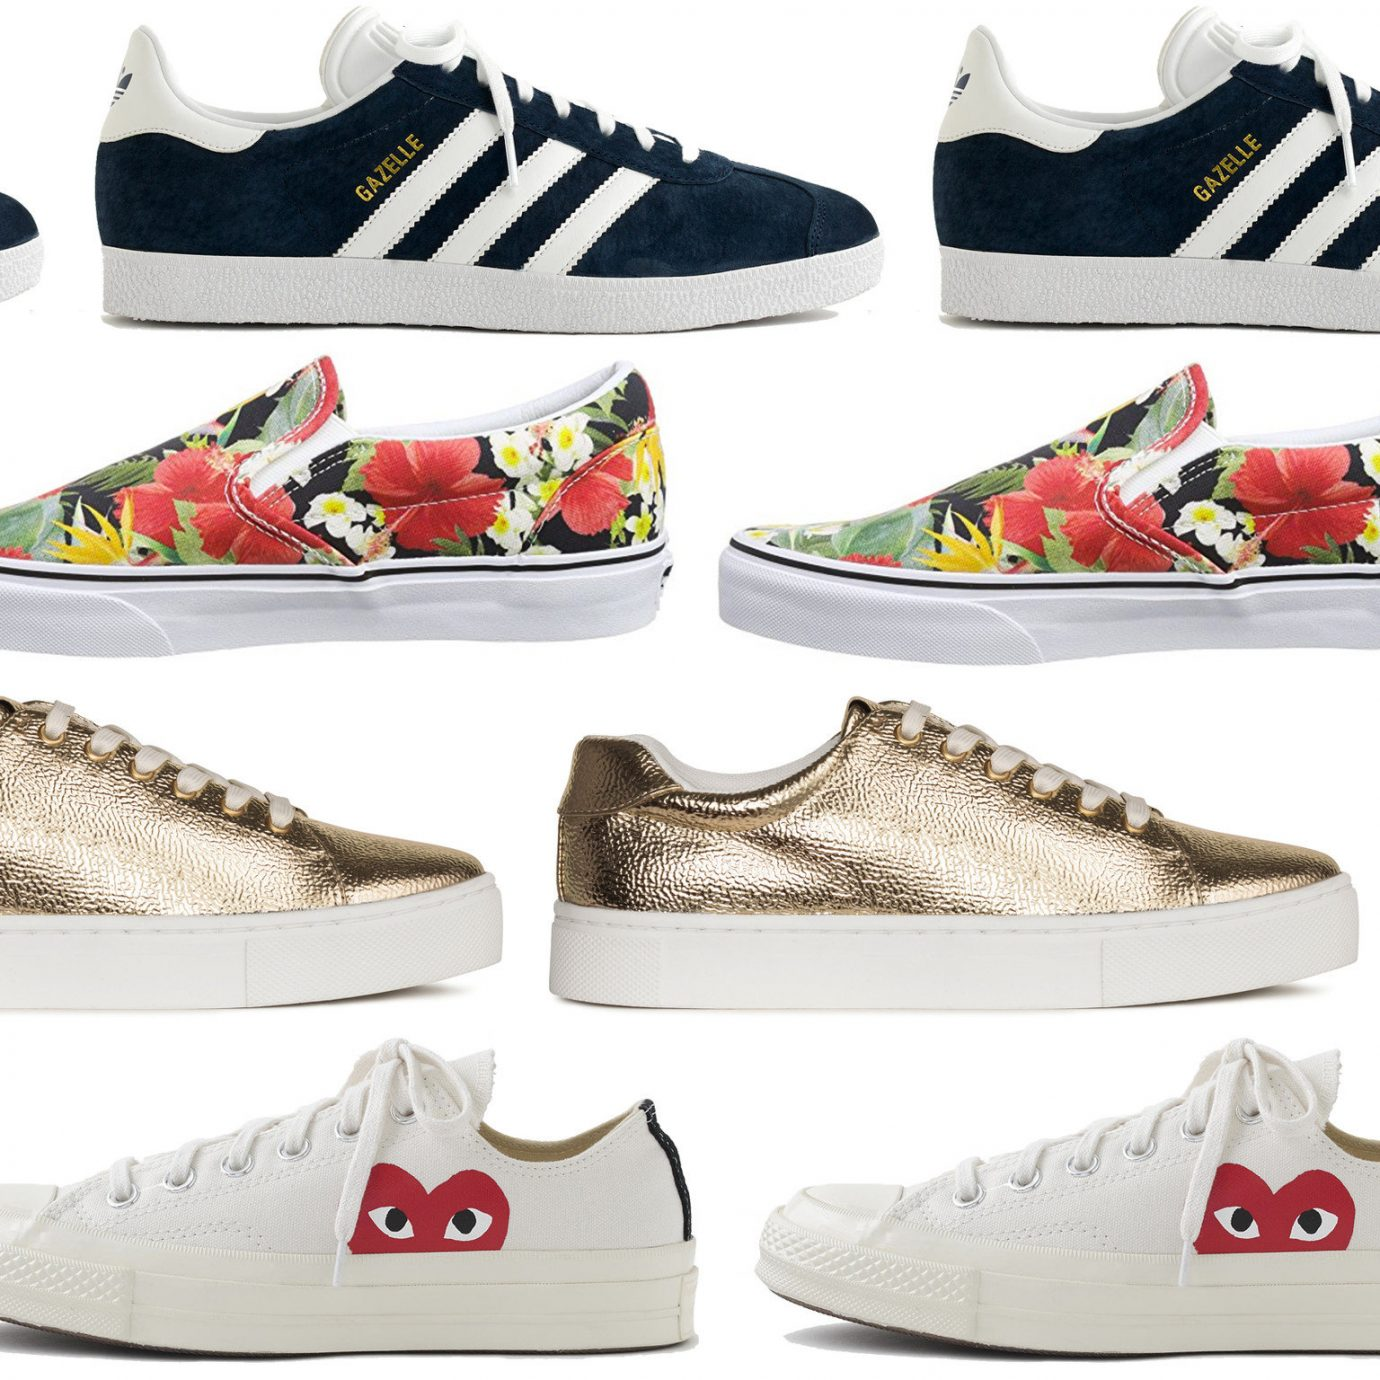 Hotels Style + Design Trip Ideas different footwear shoe plate sneakers various nike free brand items same athletic shoe several colors colorful thing event colored containing